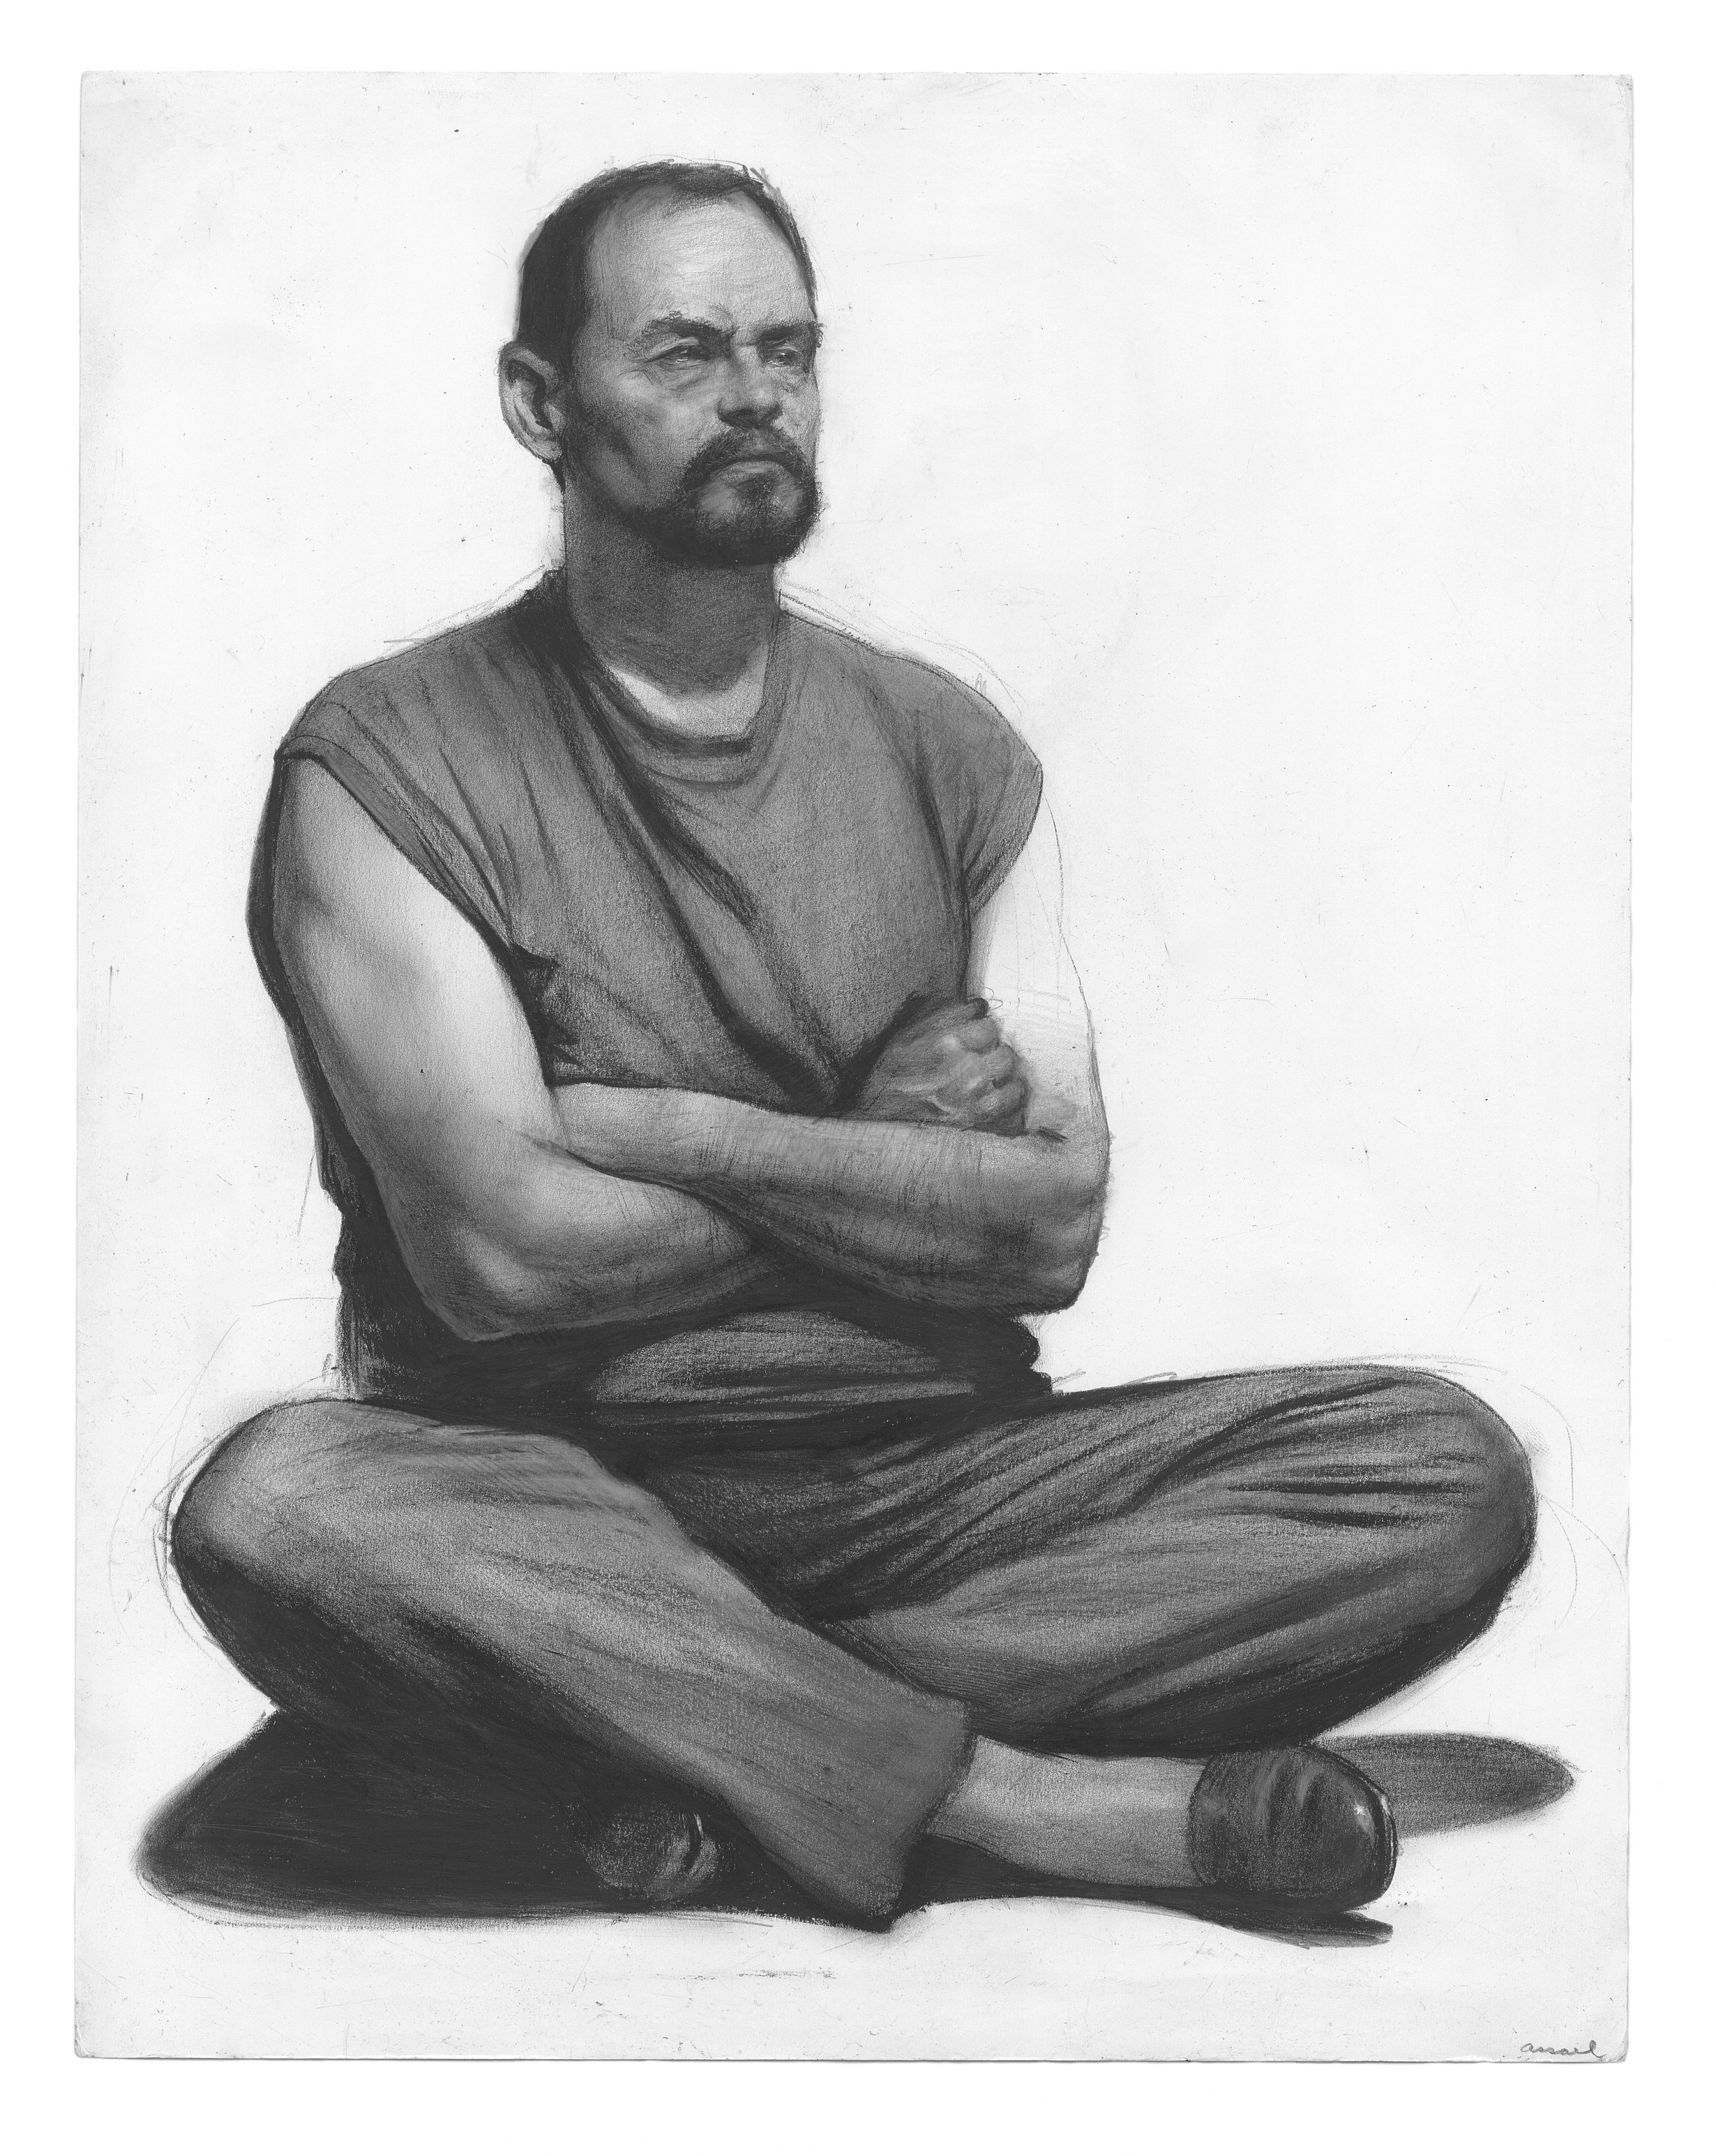 Steven Assael, Man with Crossed Arms (recto), 2013, graphite and crayon on paper, 11 x 14 inches